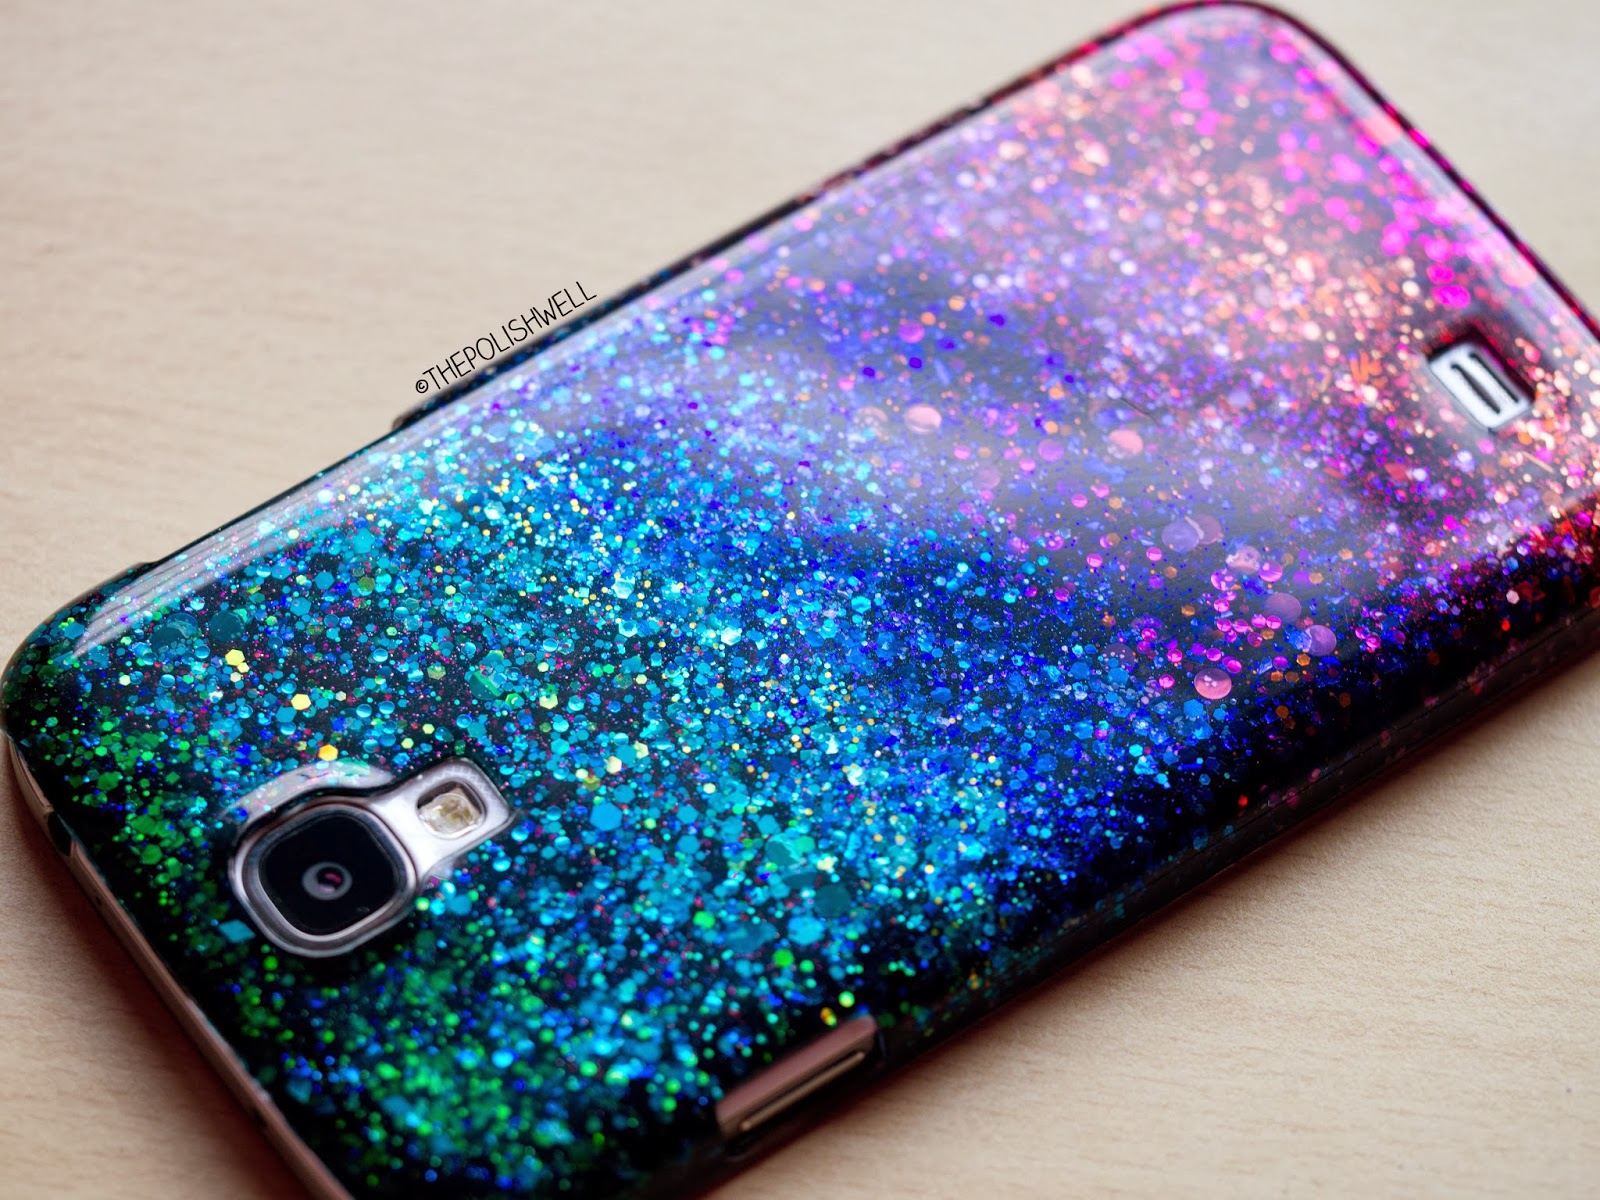 The polish well diy glitter phone cover for Homemade phone case